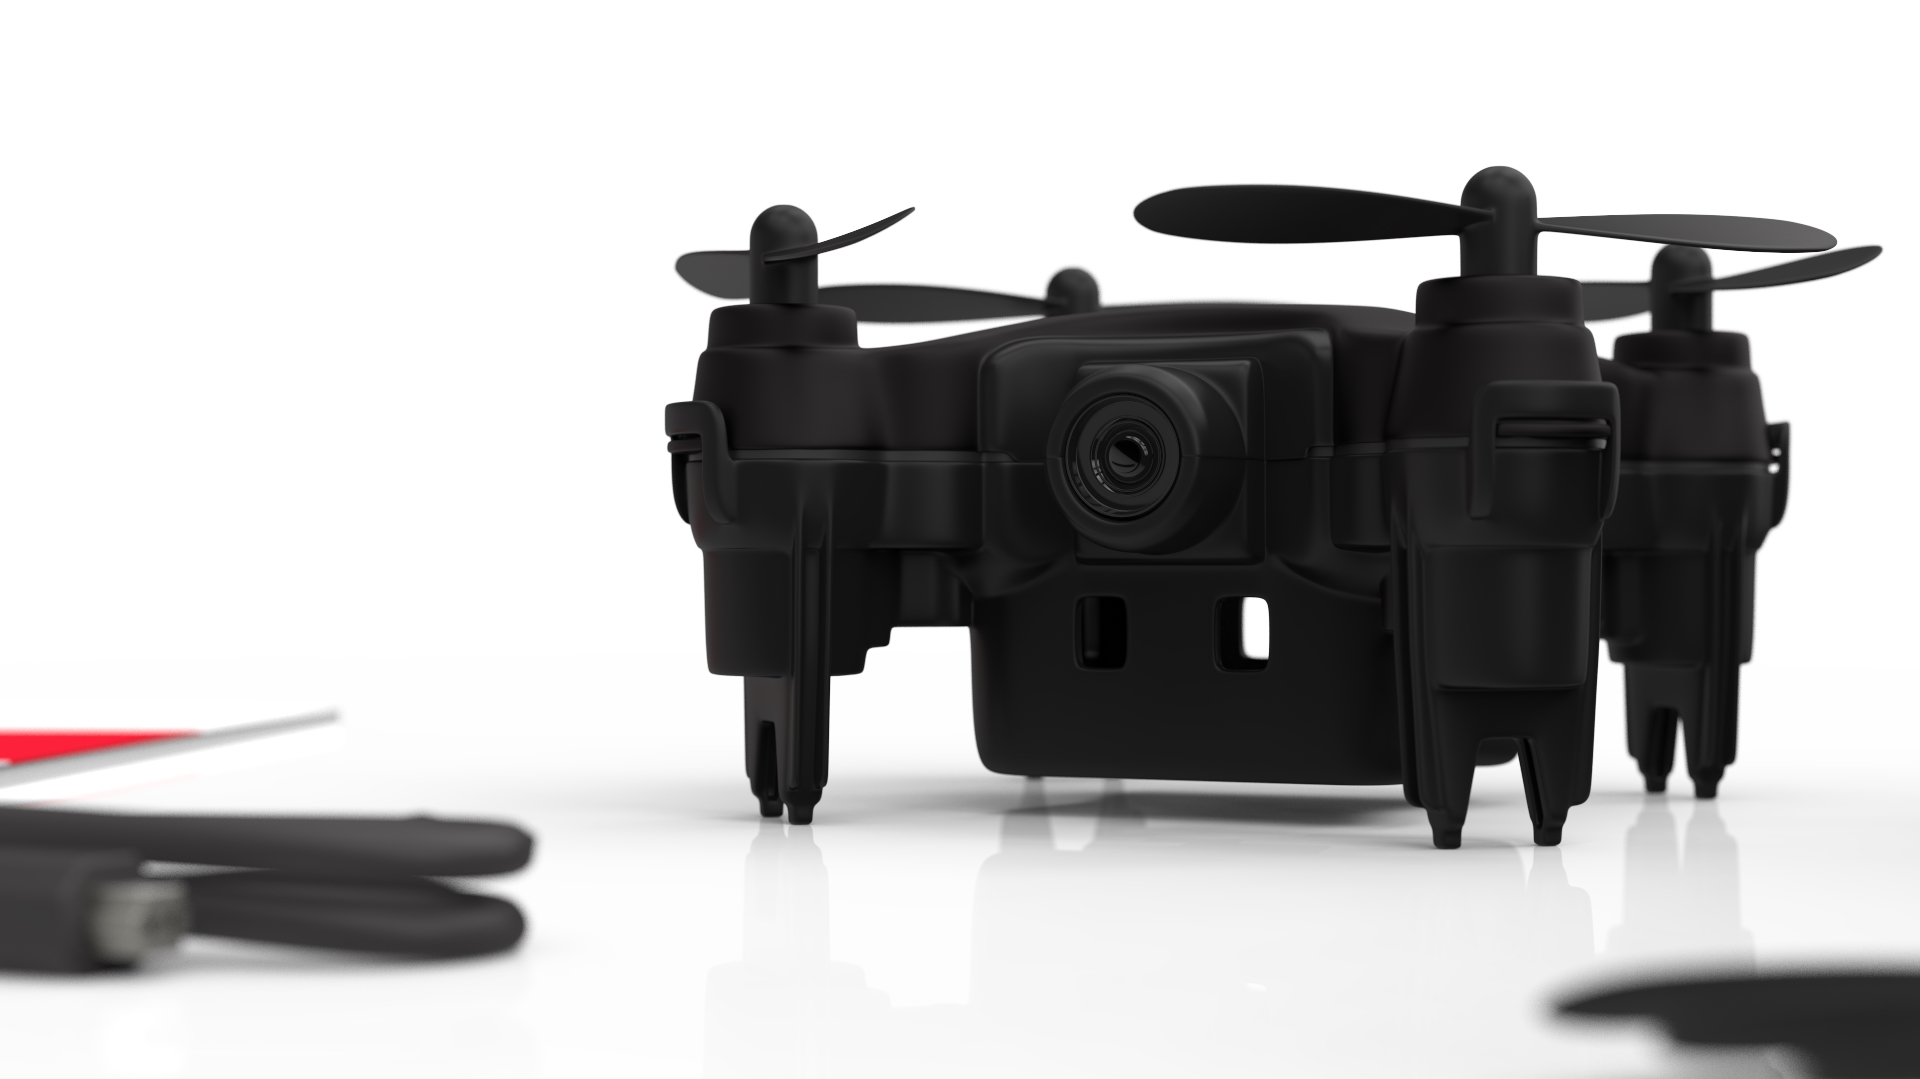 JETJAT ULTRA Micro Streaming Drone Named Finalist For 2017 Toy Of